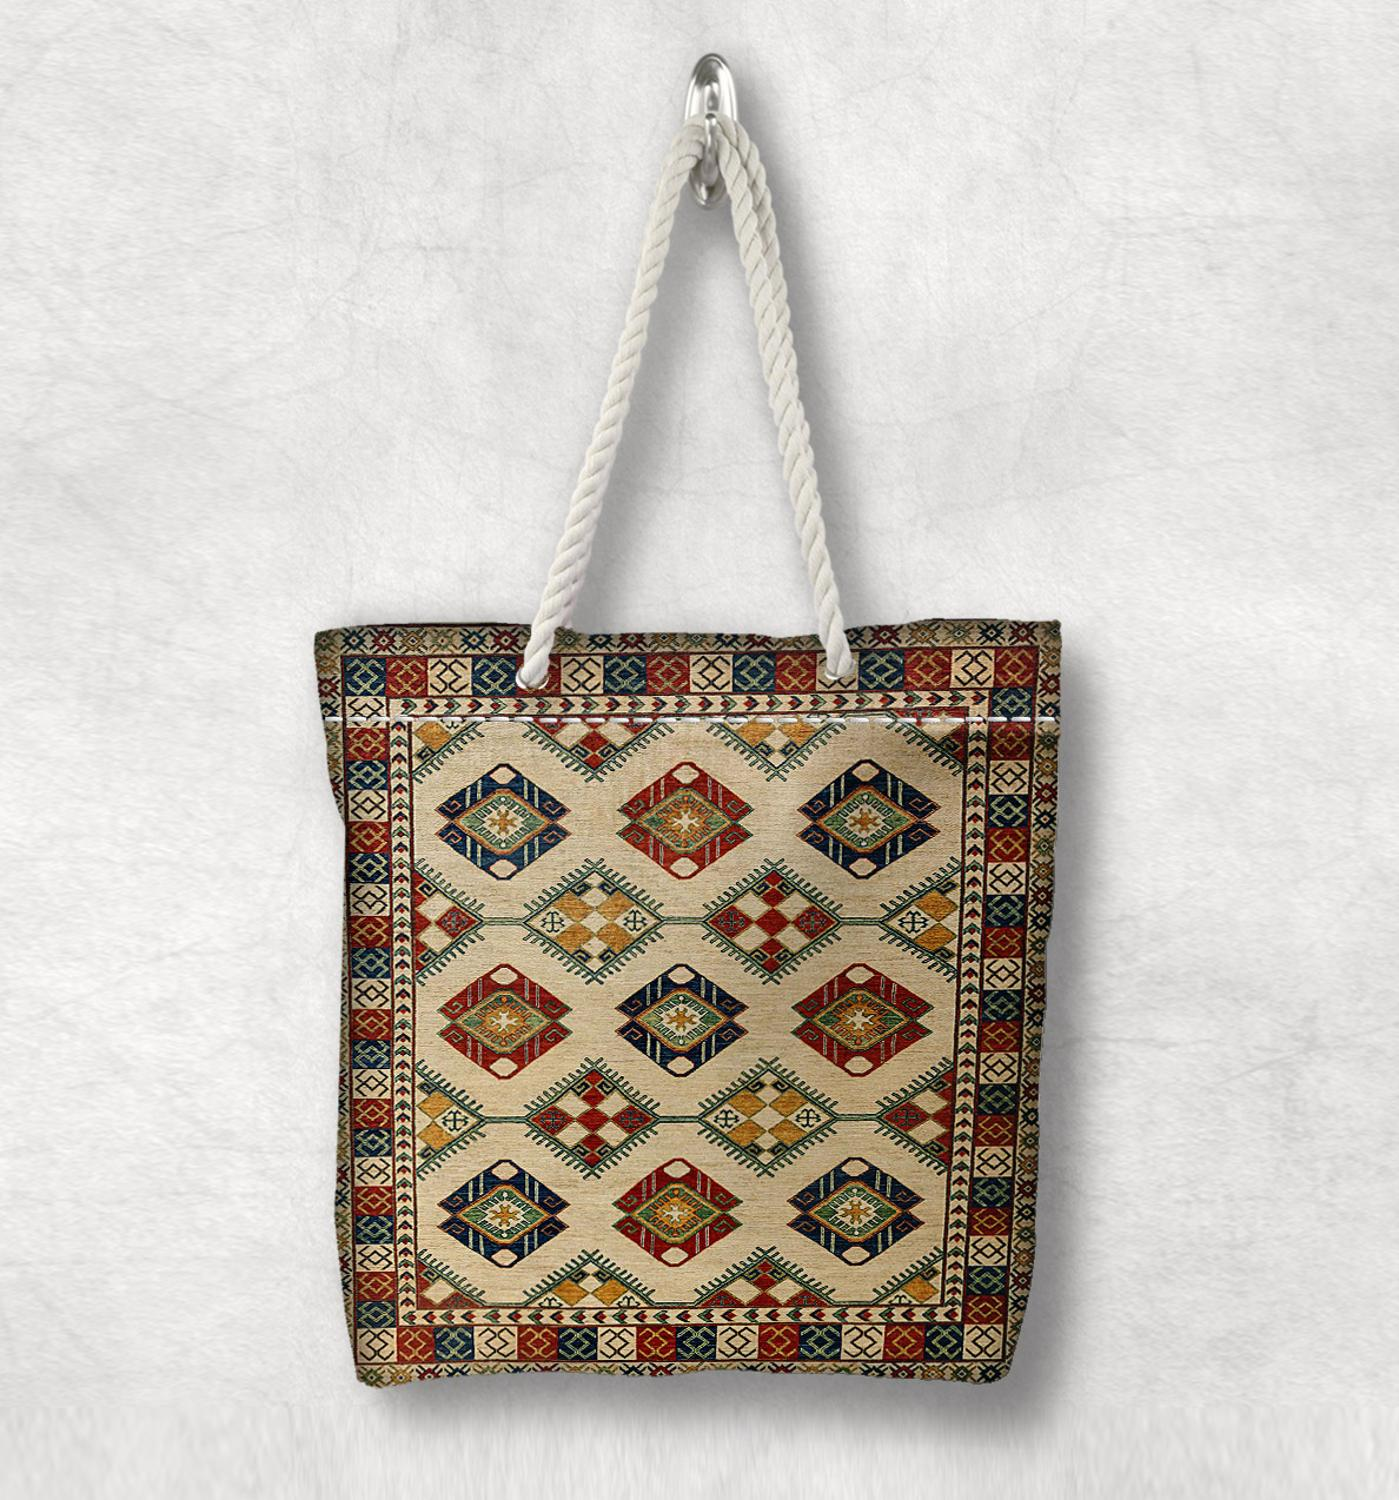 Else Beige Authentic Anatolia Antique Kilim Design White Rope Handle Canvas Bag Cotton Canvas Zippered Tote Bag Shoulder Bag